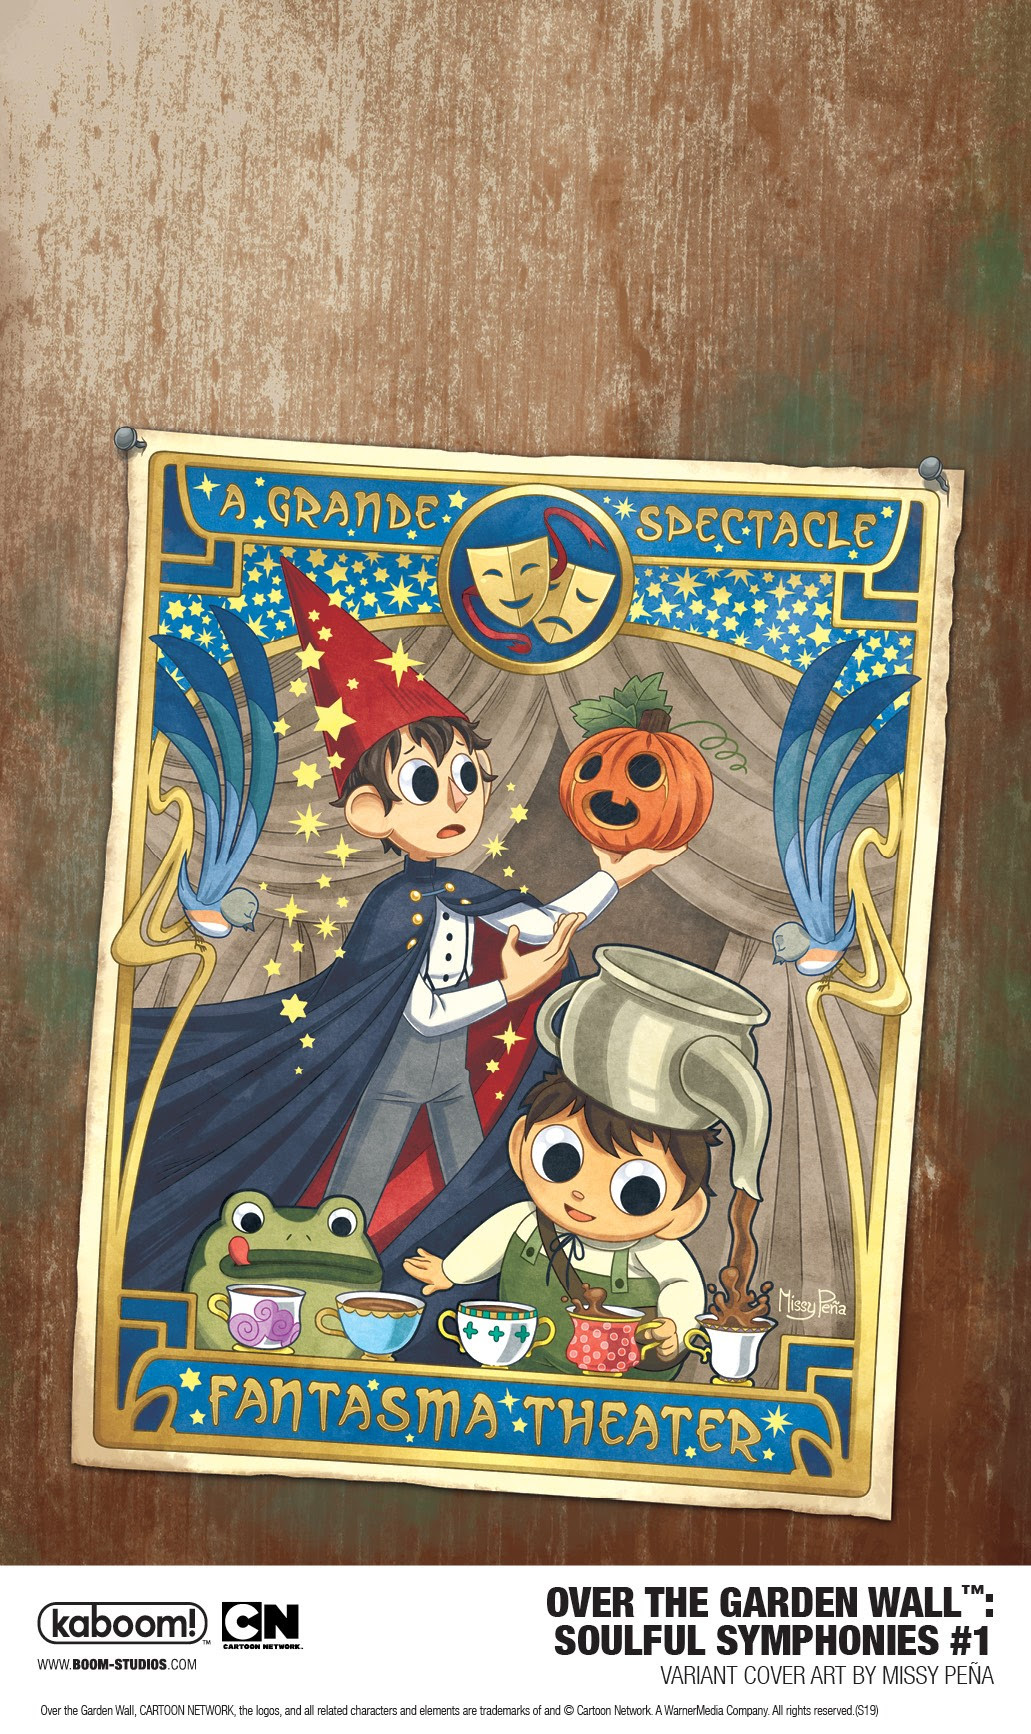 Over the Garden Wall: Soulful Symphonies #1 variant cover B